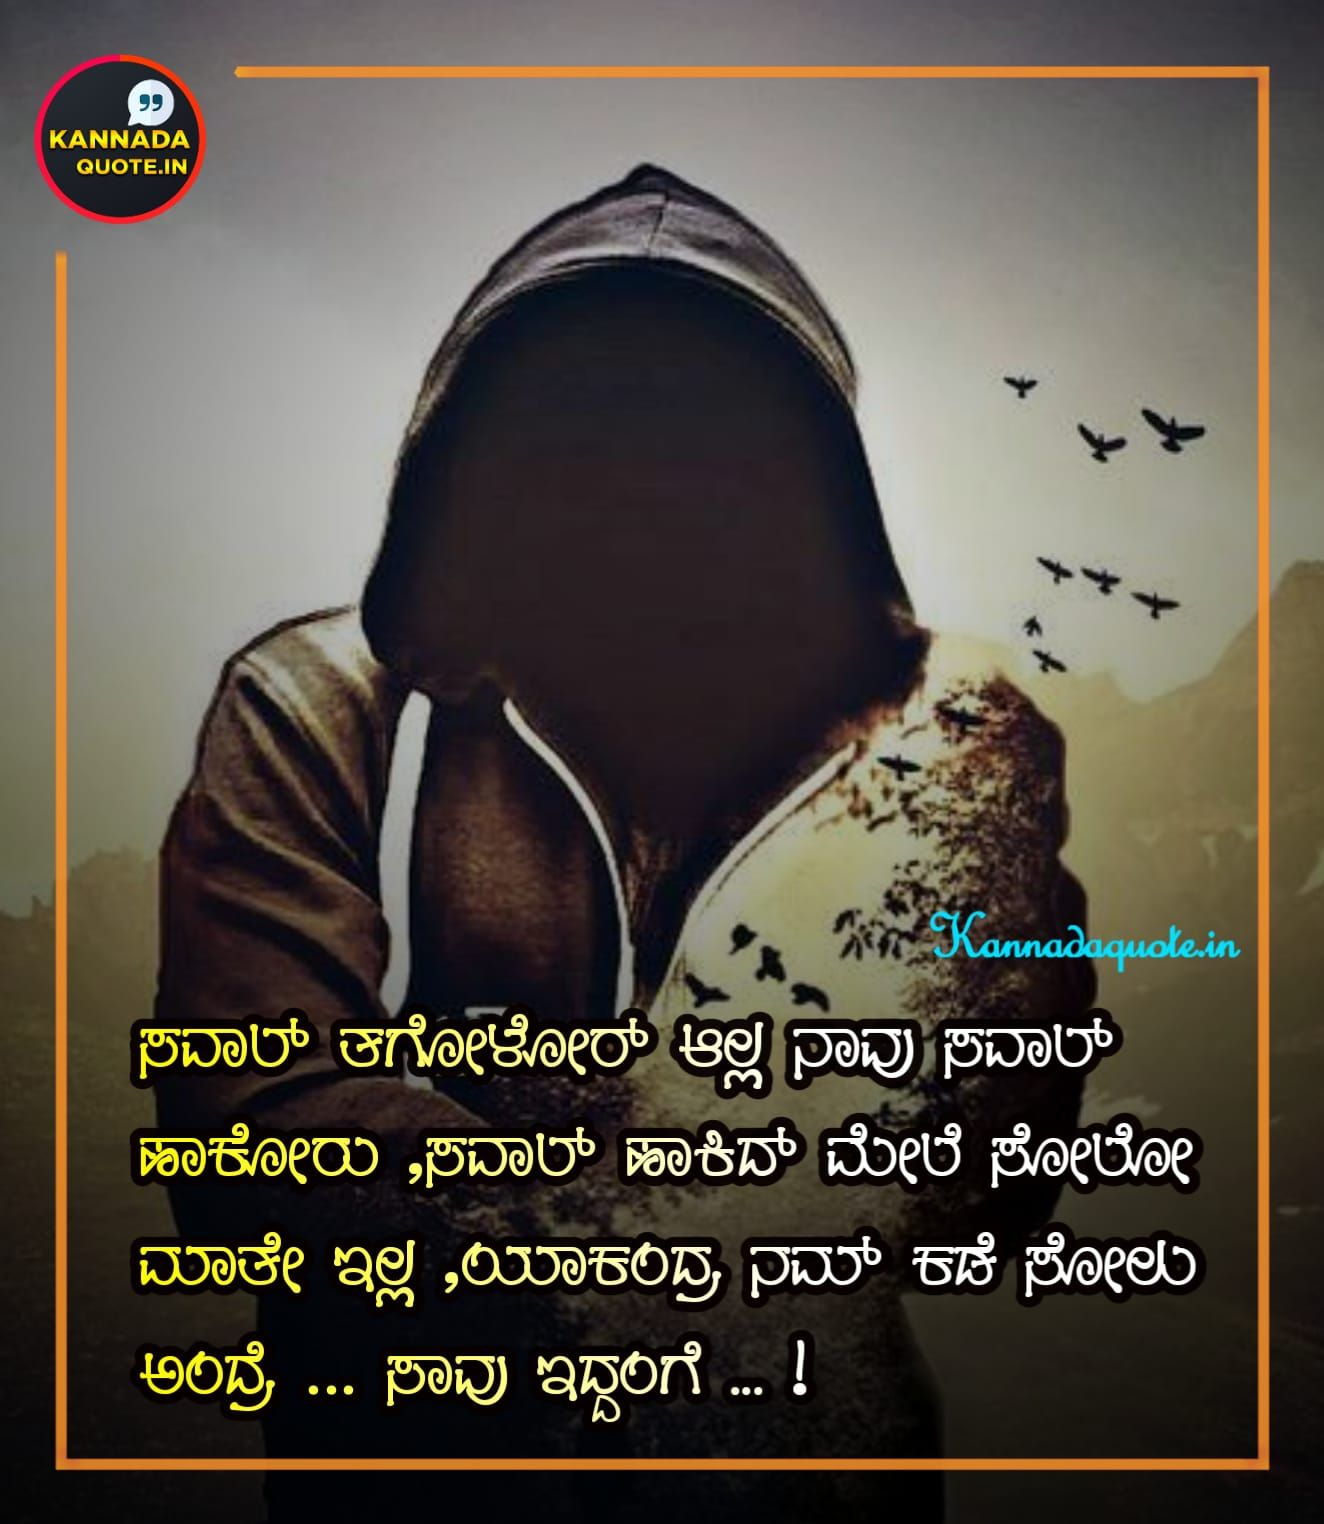 Attitude Quotes Kannada Share Chat Kannadaquotes Whatsapp Status Quotes Quotes For Whatsapp Attitude Quotes